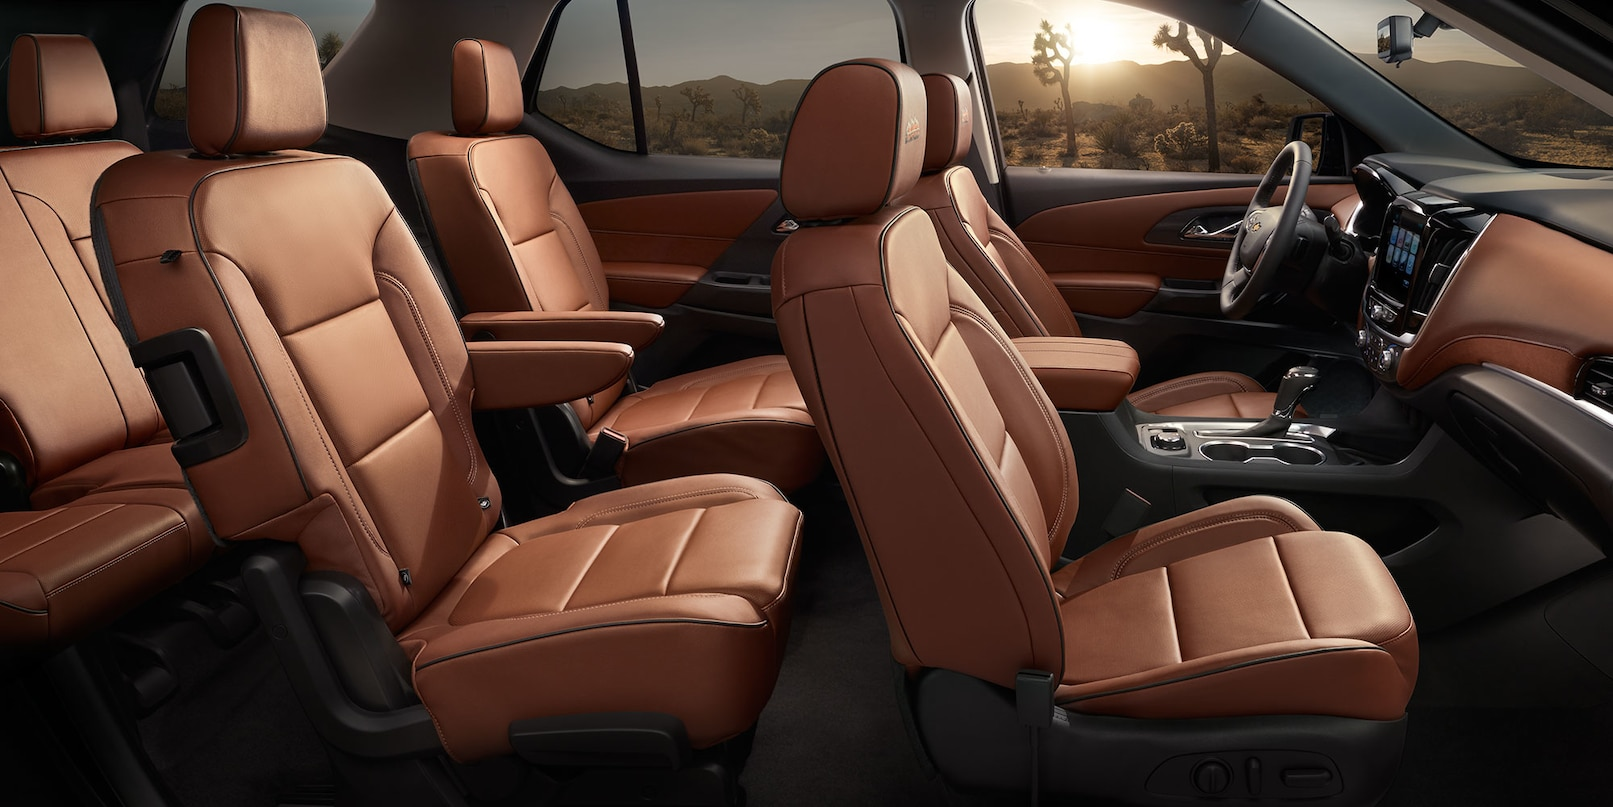 Safety Surrounds You in the 2019 Chevy Traverse